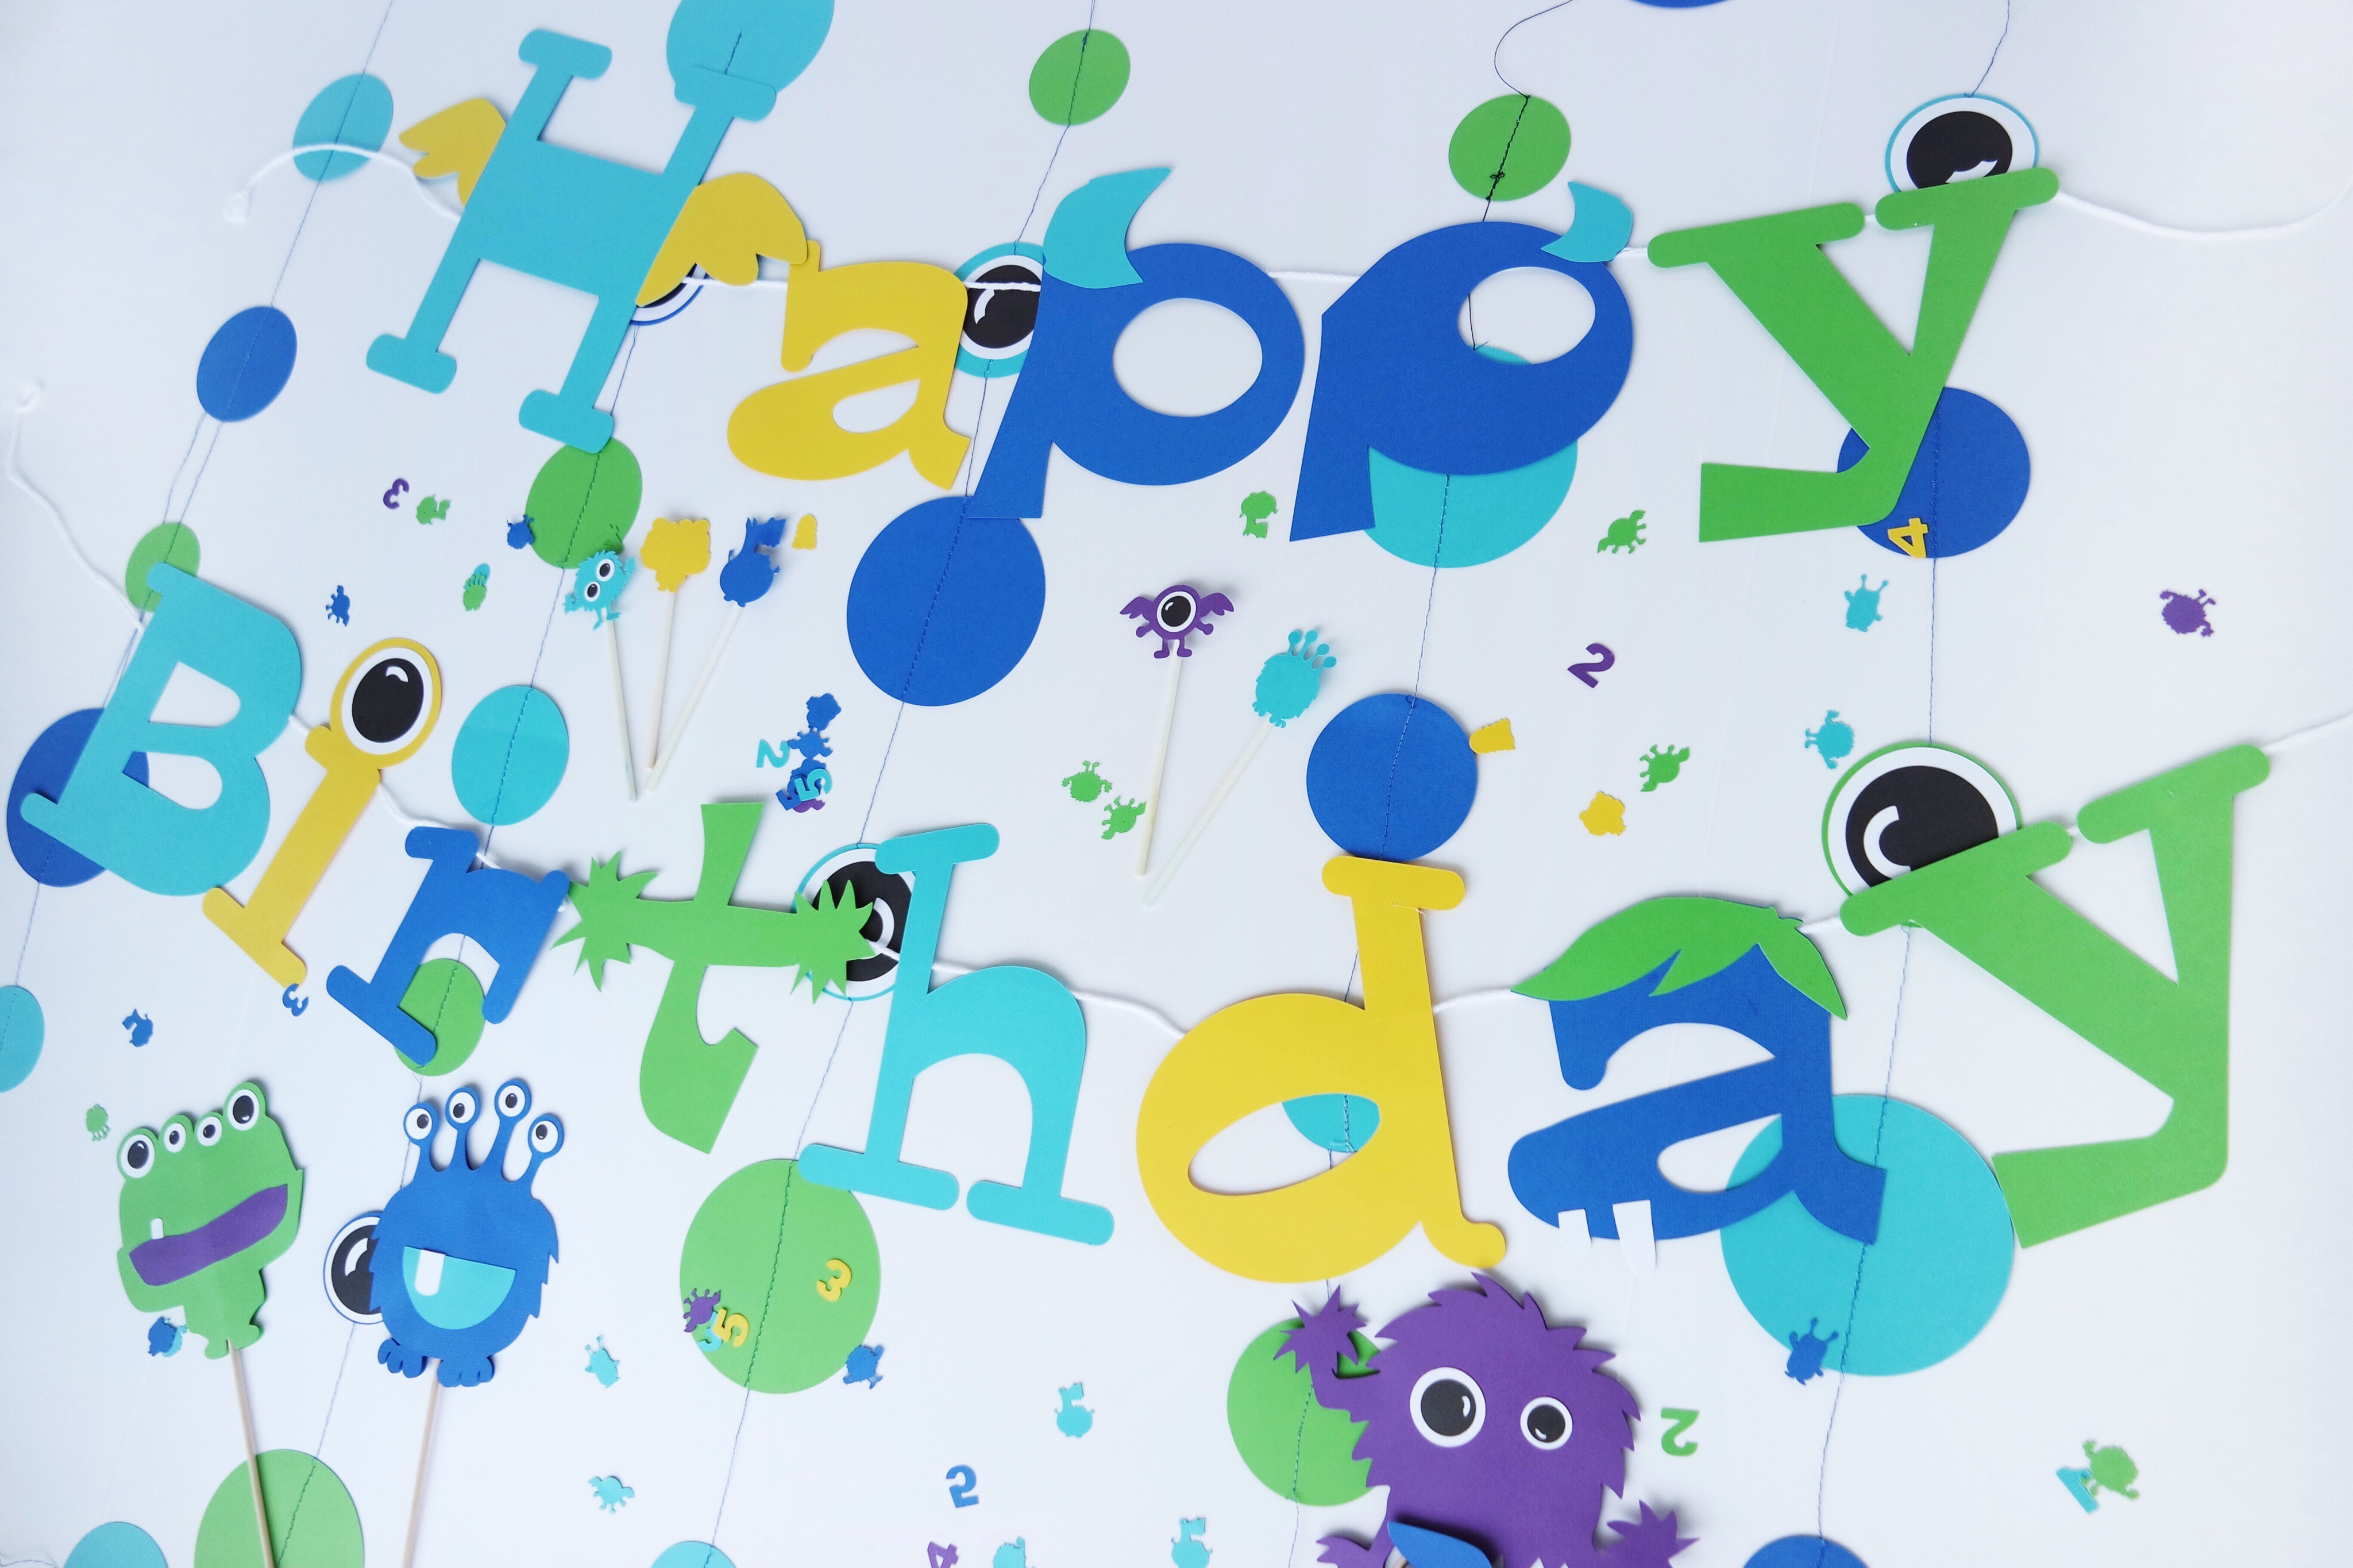 Monster birthday party decor from Party At Your Door // Little Monster Birthday Party Ideas - fun decoration and sweets ideas for baby & toddler monster parties